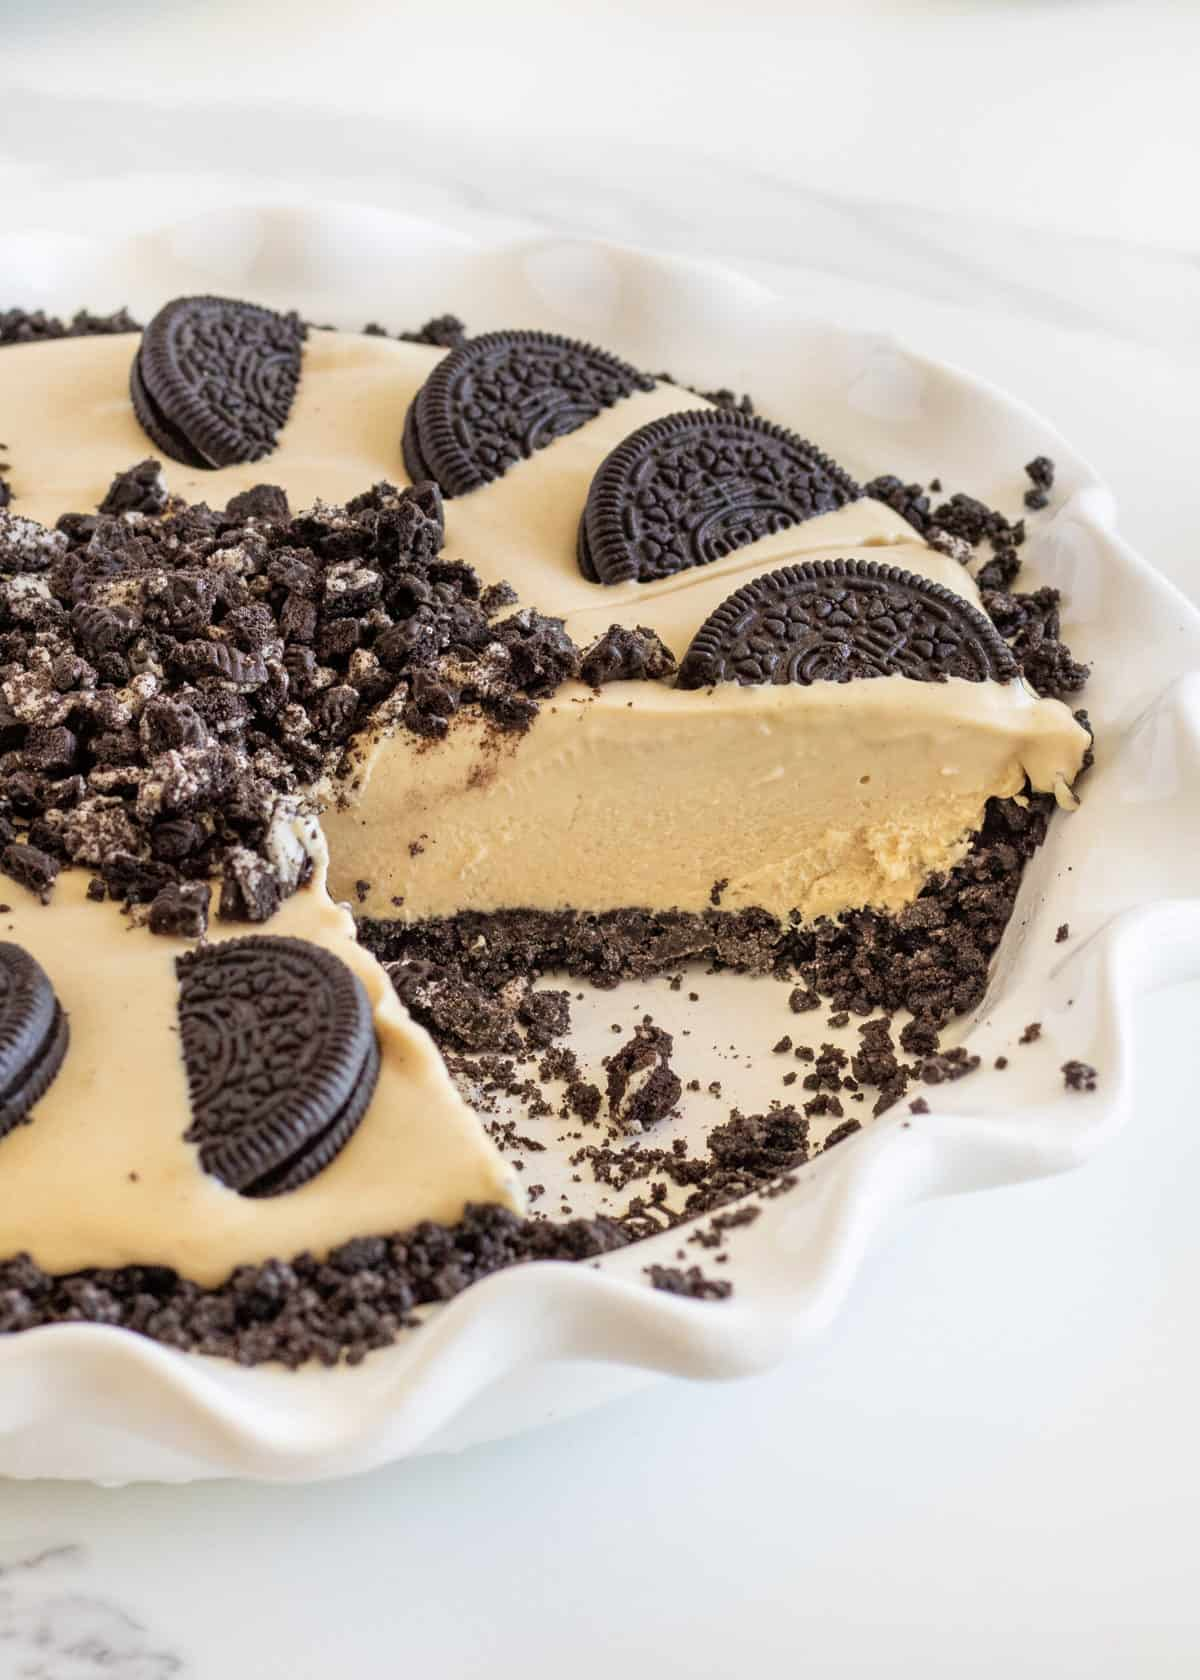 Chocolate Peanut Butter Ice Cream Pie by The BakerMama